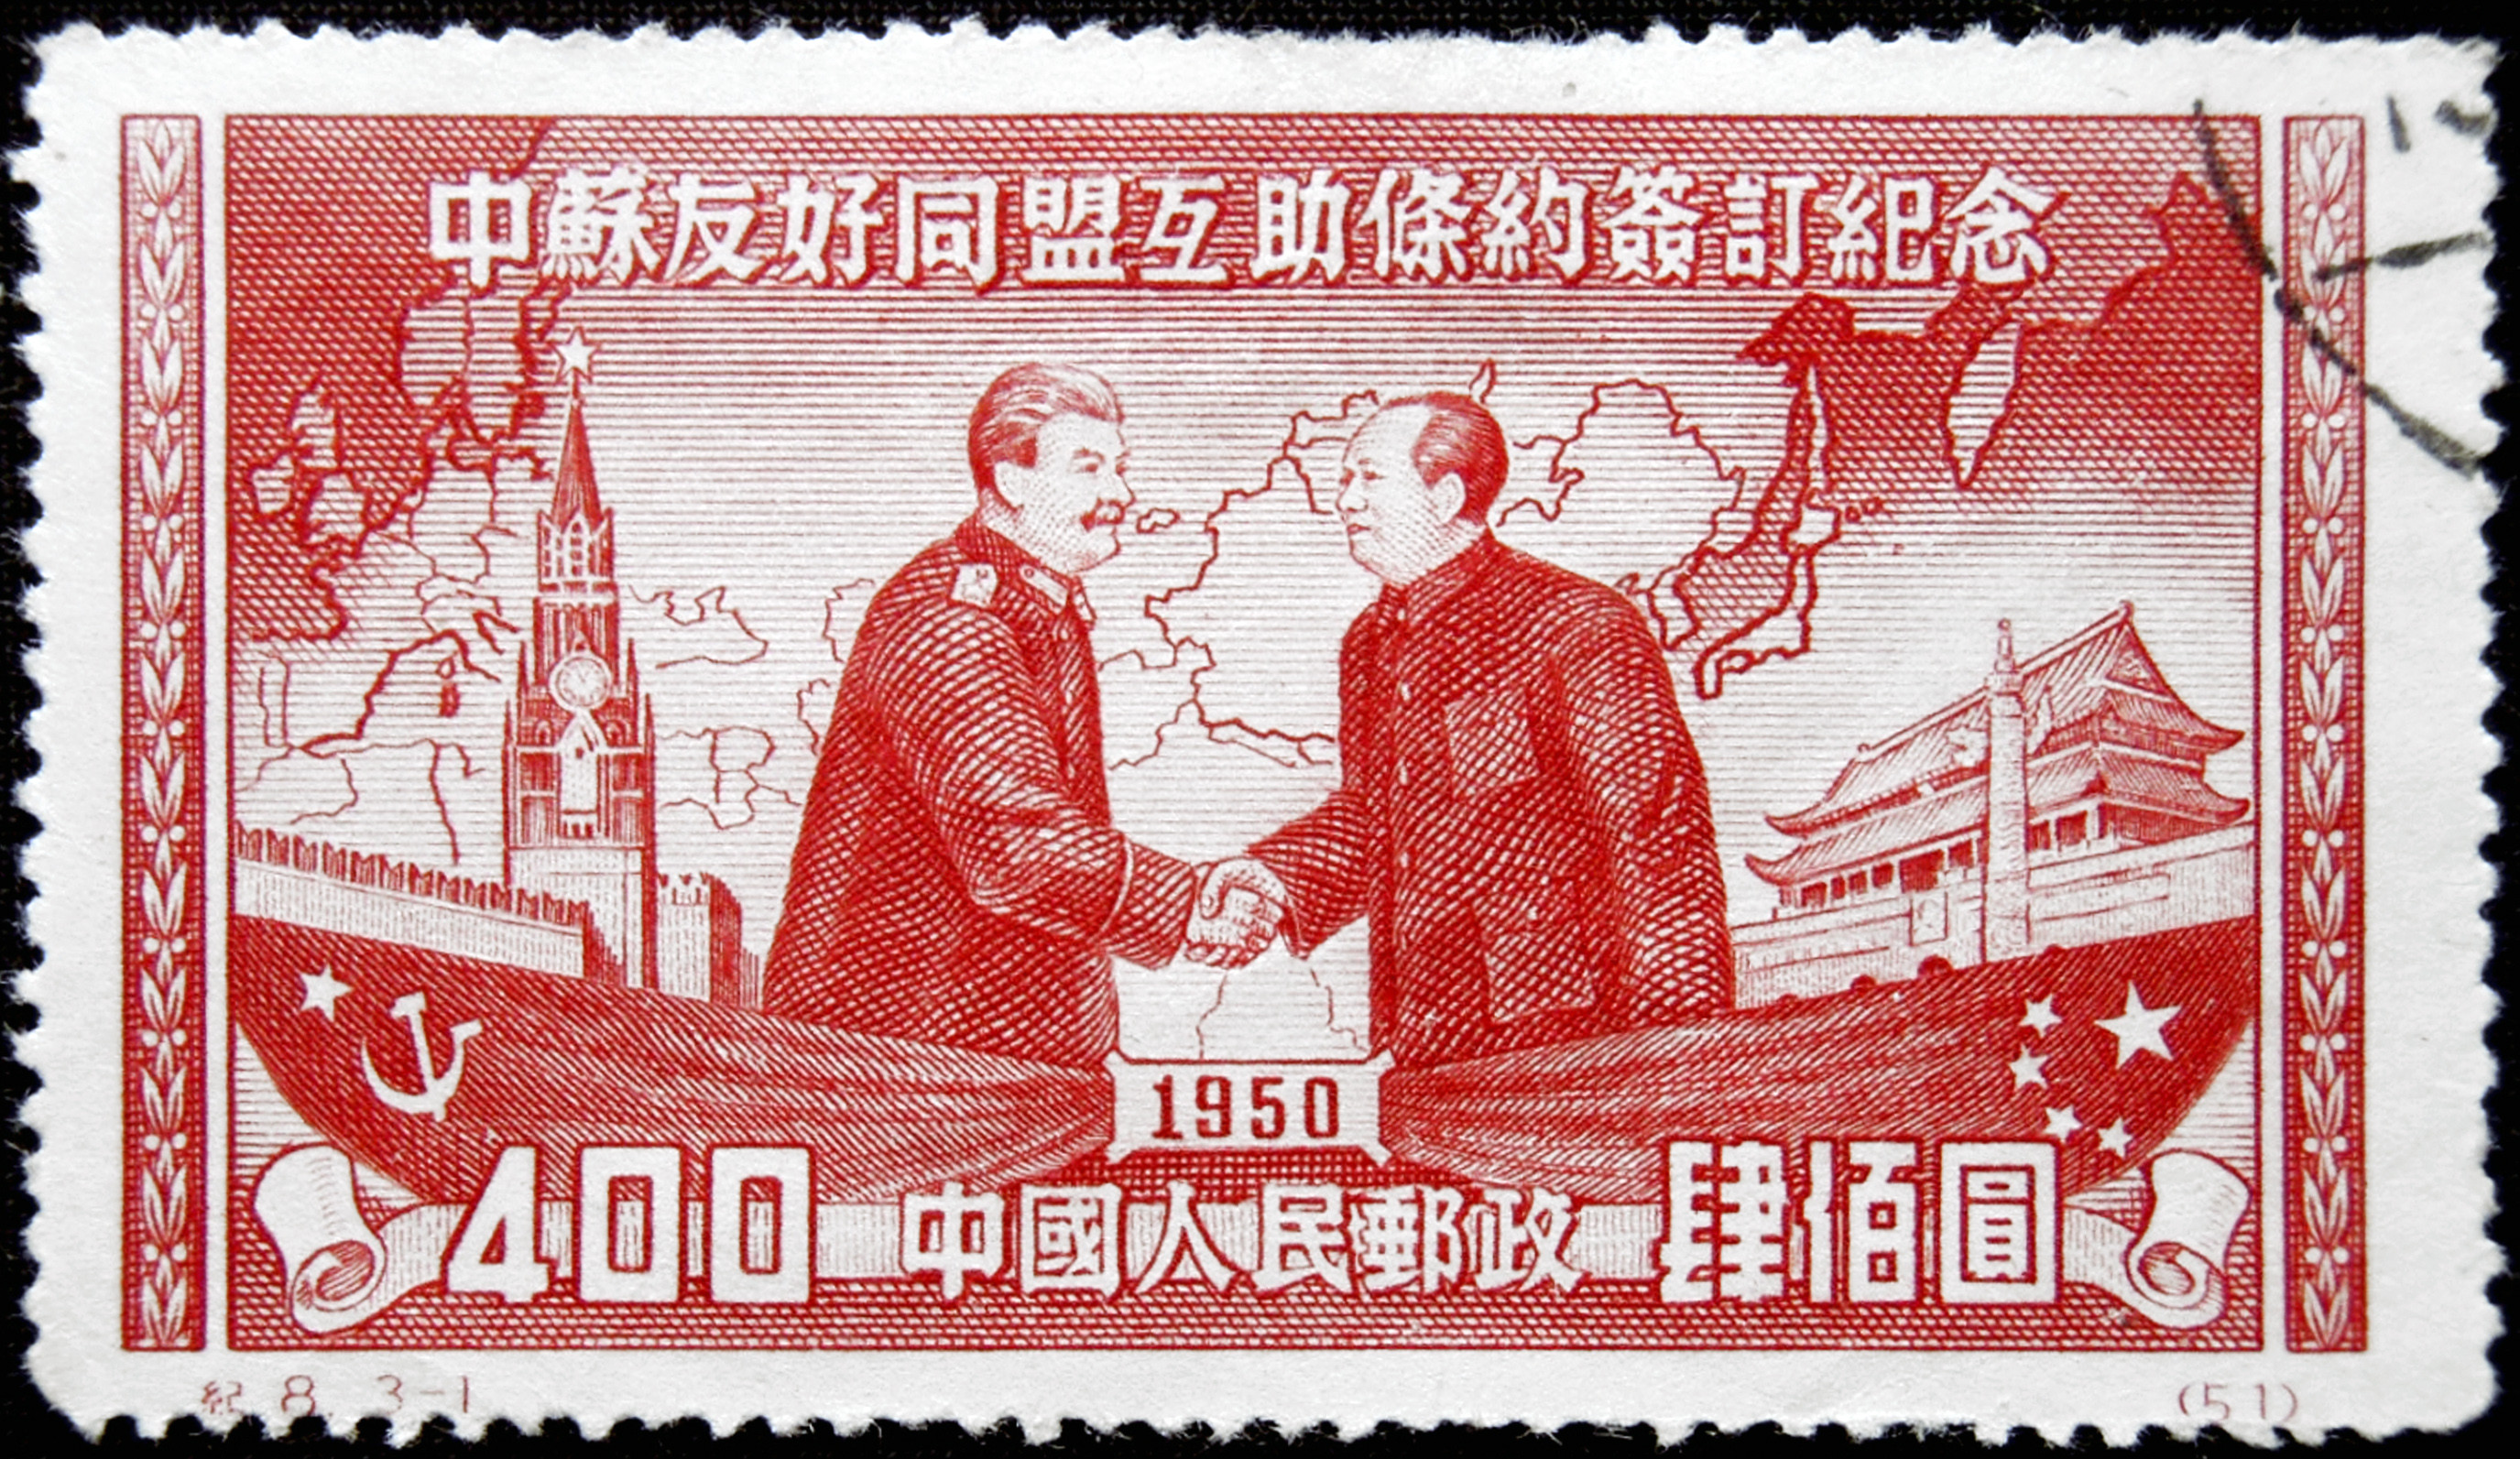 Res: 2751x1593, Man Made - Stamp Mao Zedong Joseph Stalin Chinese Wallpaper